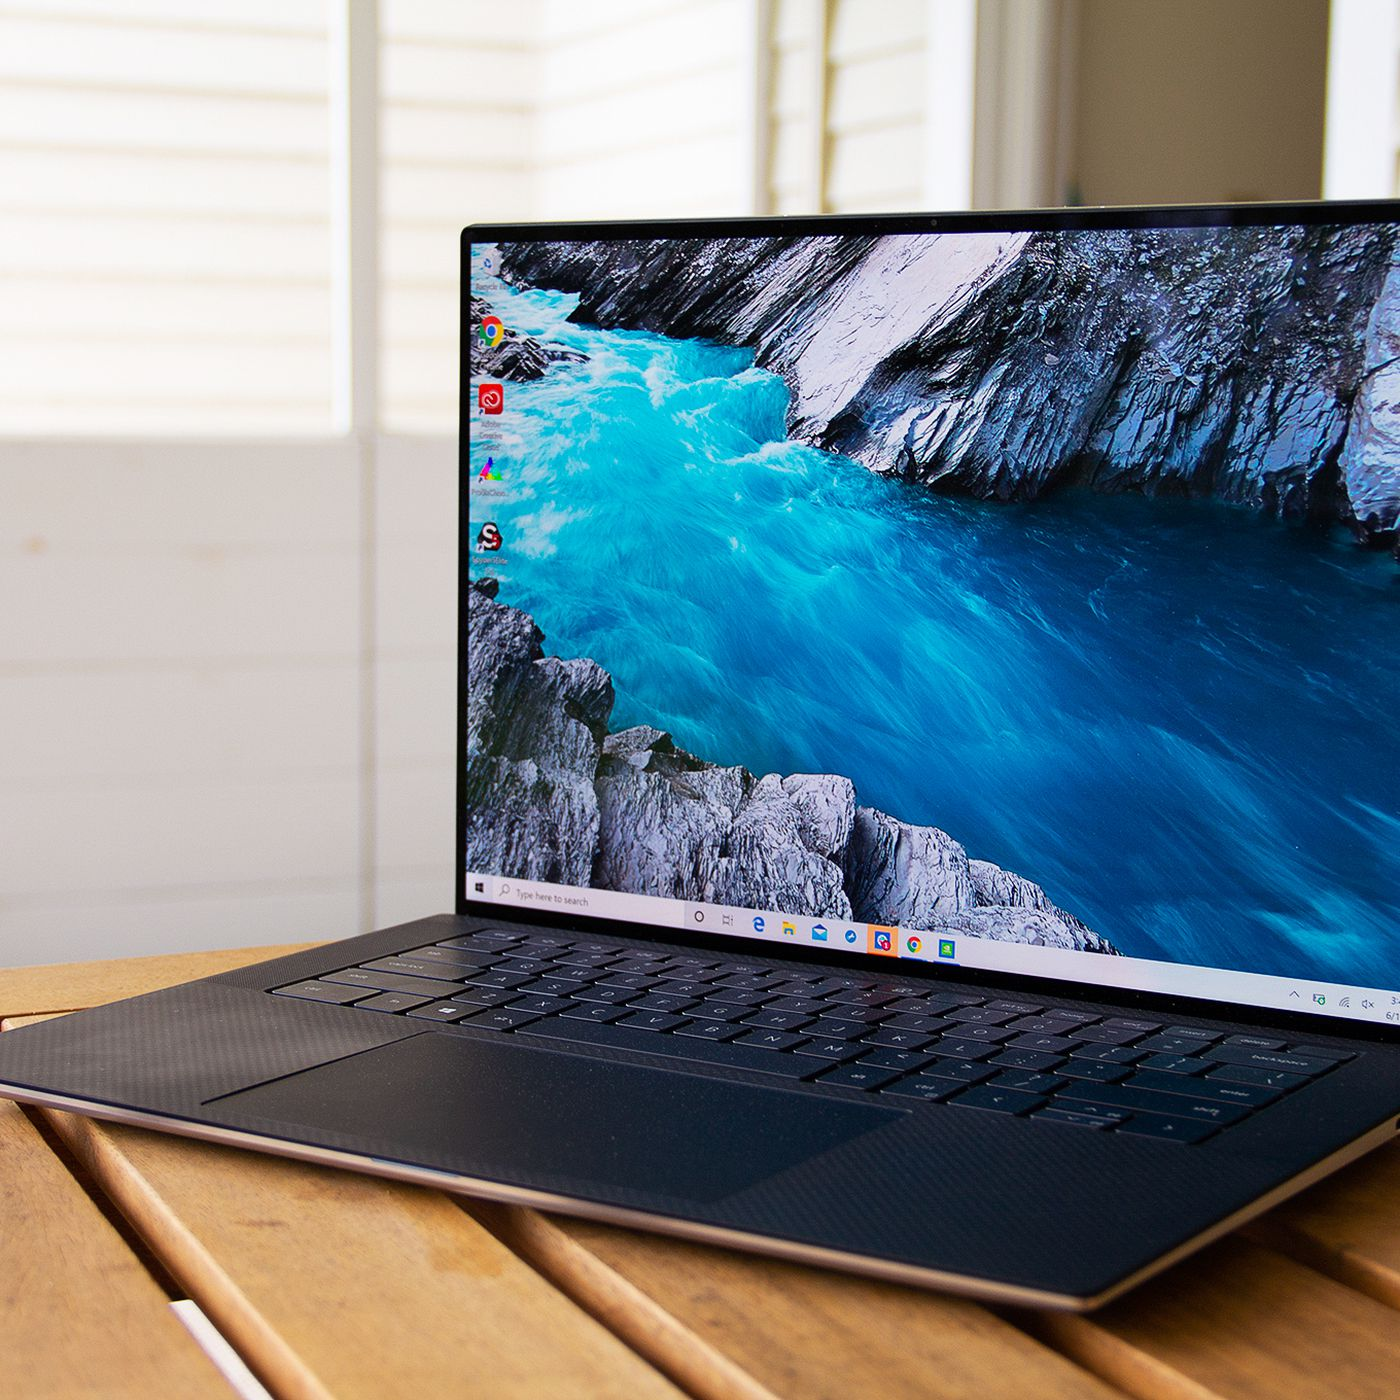 Dell Xps 15 2020 Review New Design Familiar Problems The Verge